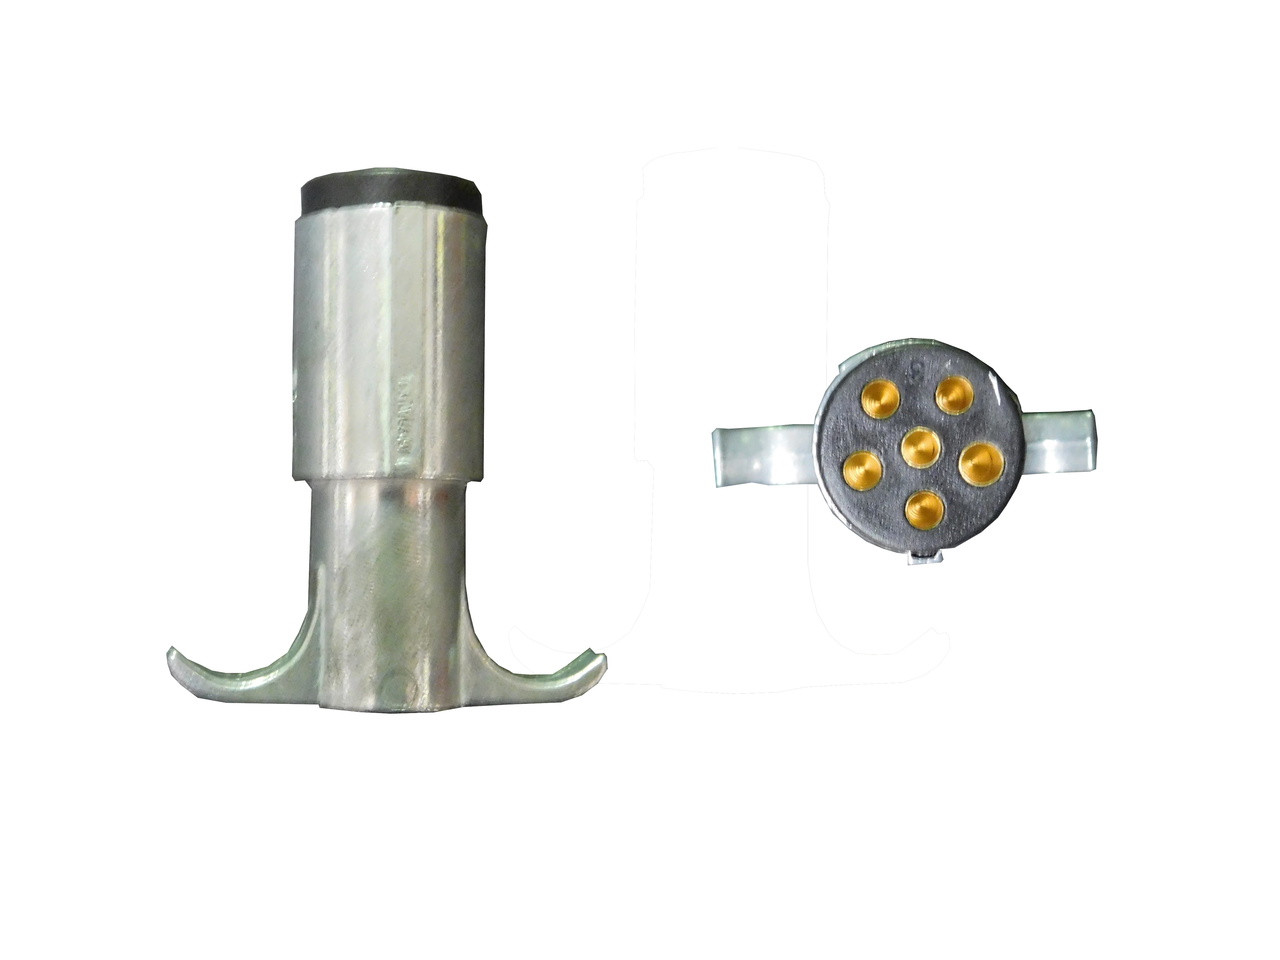 clearance 6 pin round trailer connector male price 8 99 image 1 [ 1280 x 960 Pixel ]